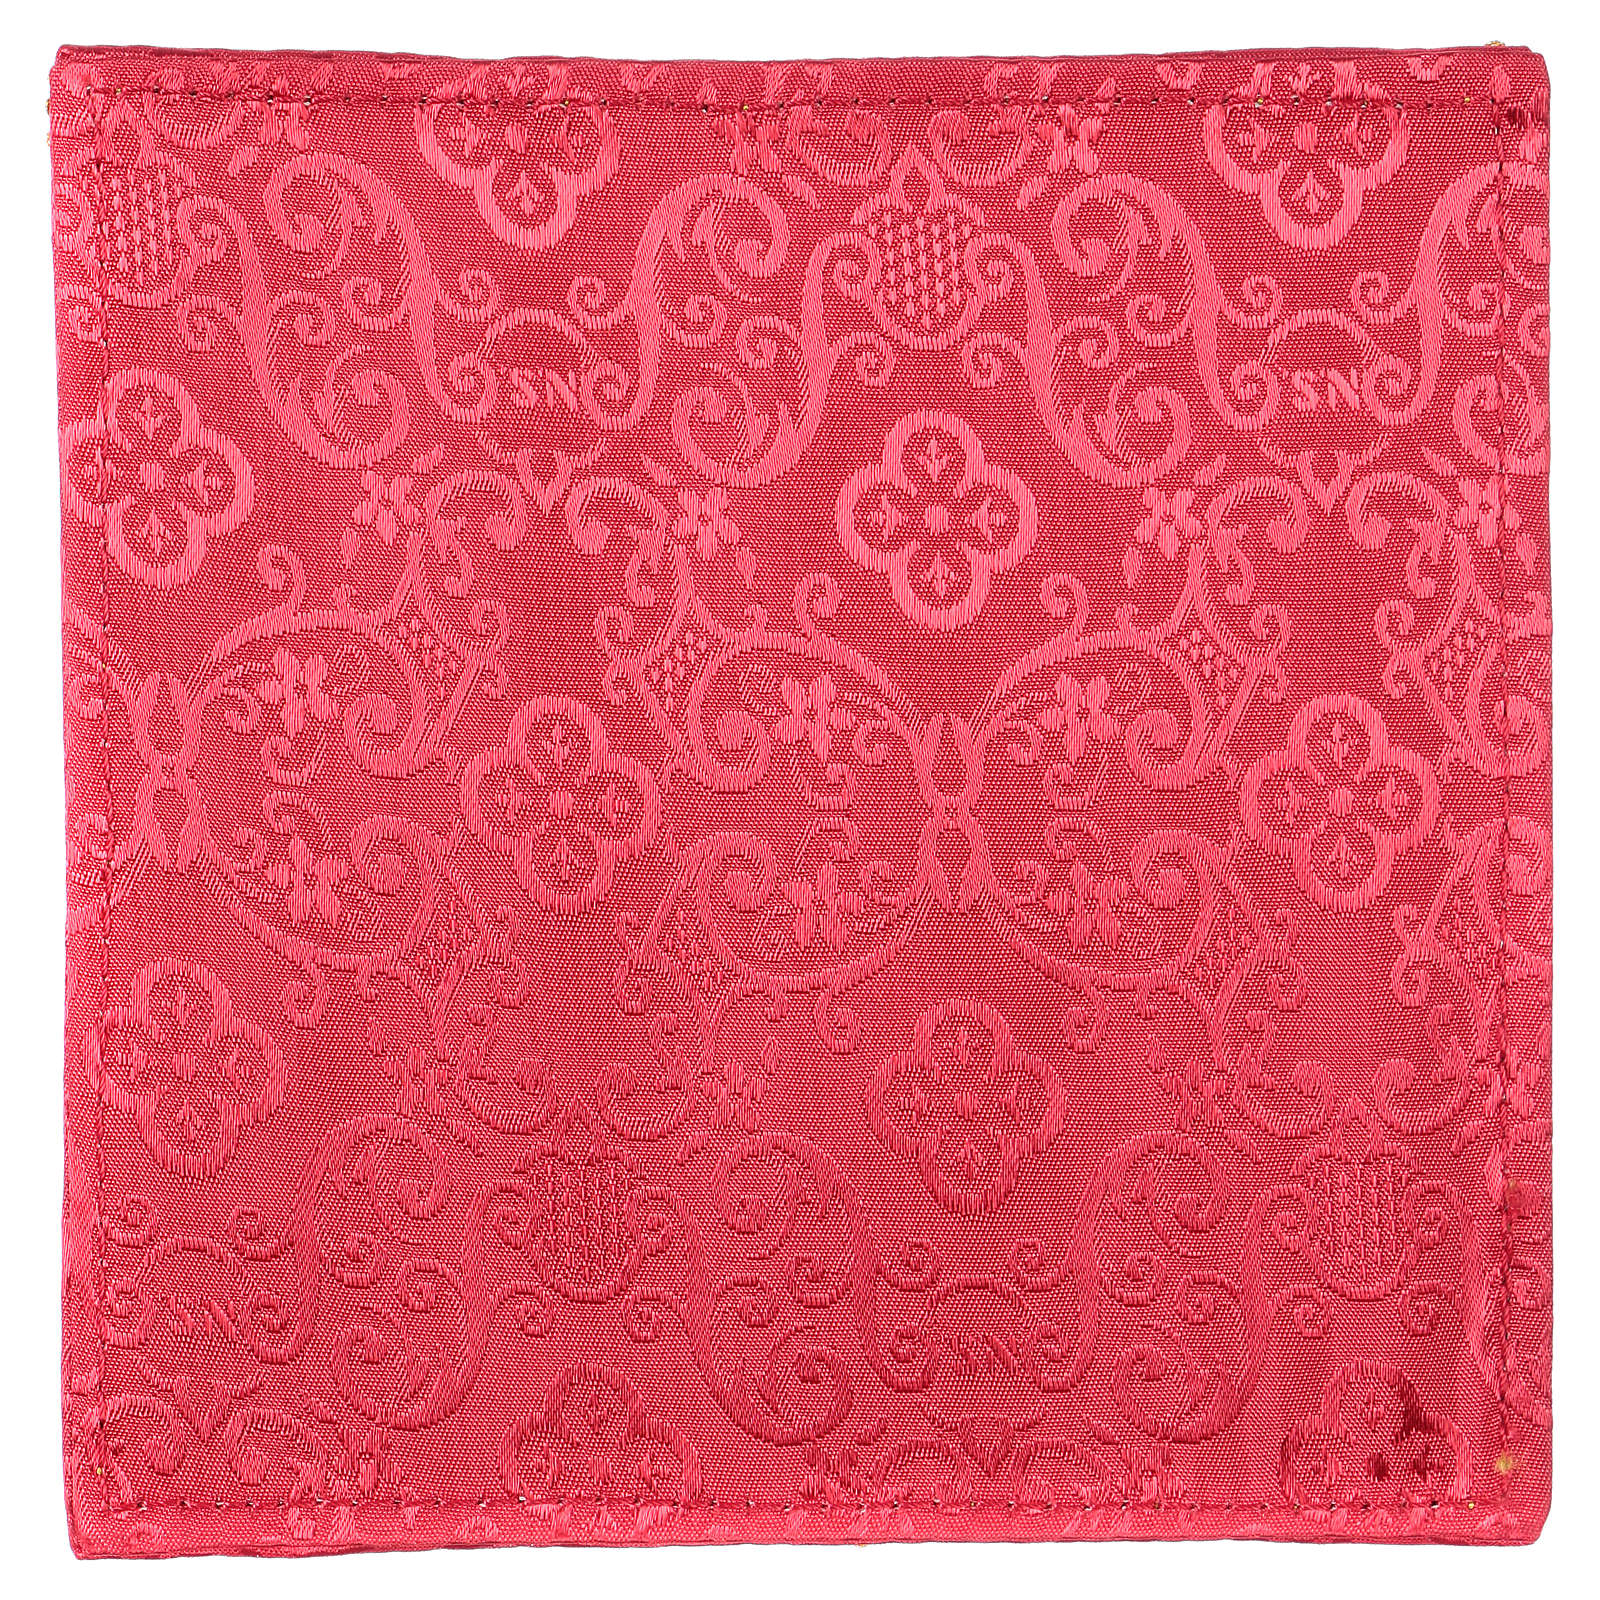 Chi-Rho chalice pall red jacquard 4